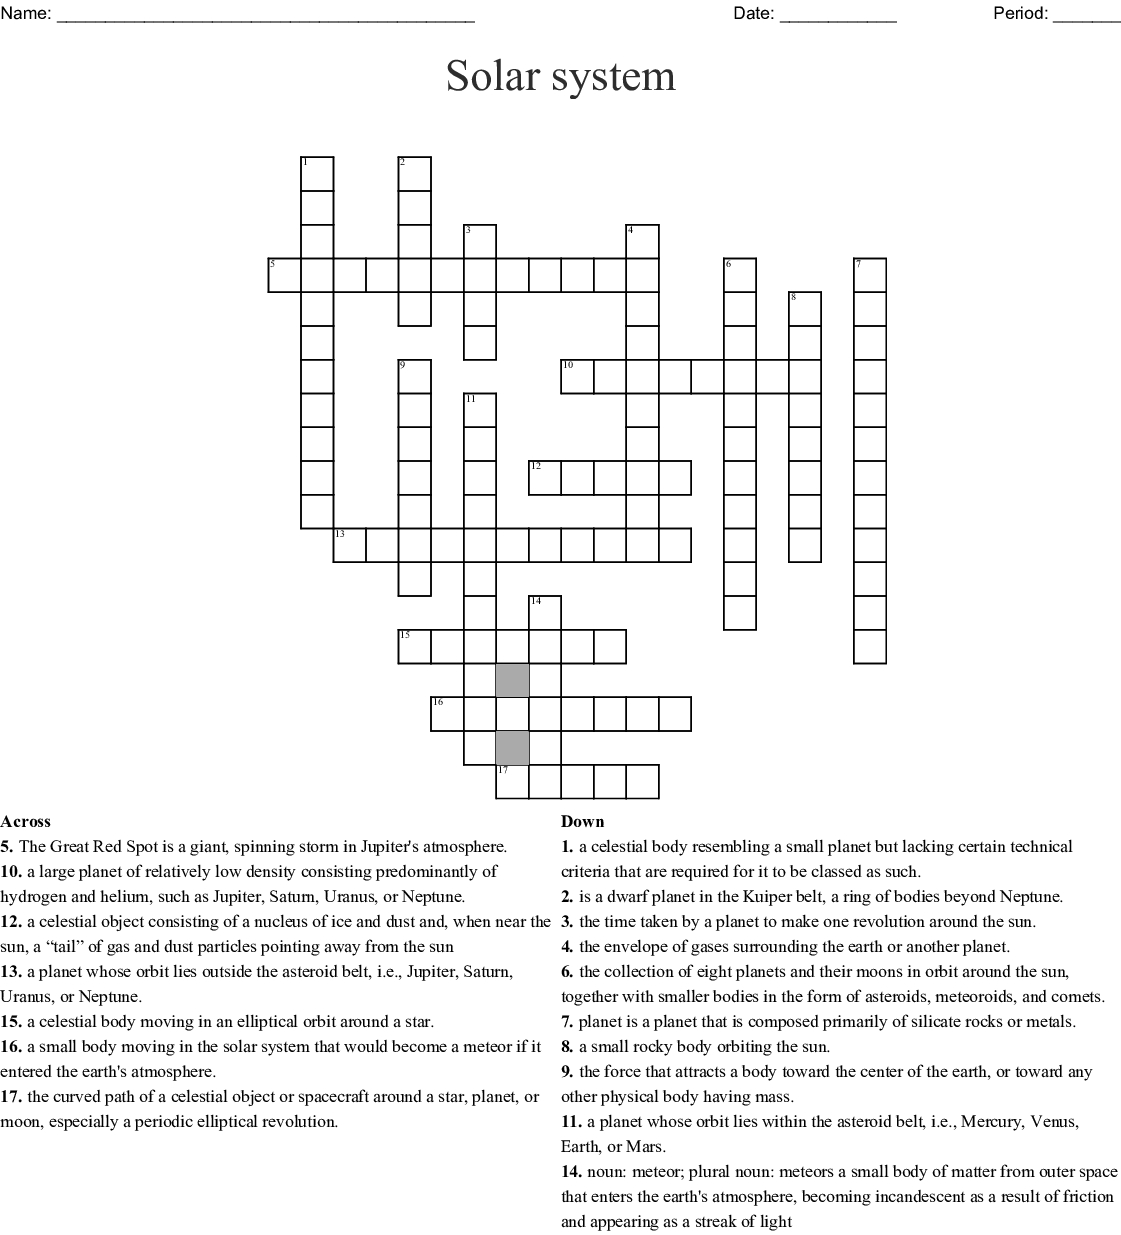 Solar System Crossword Puzzle Printable